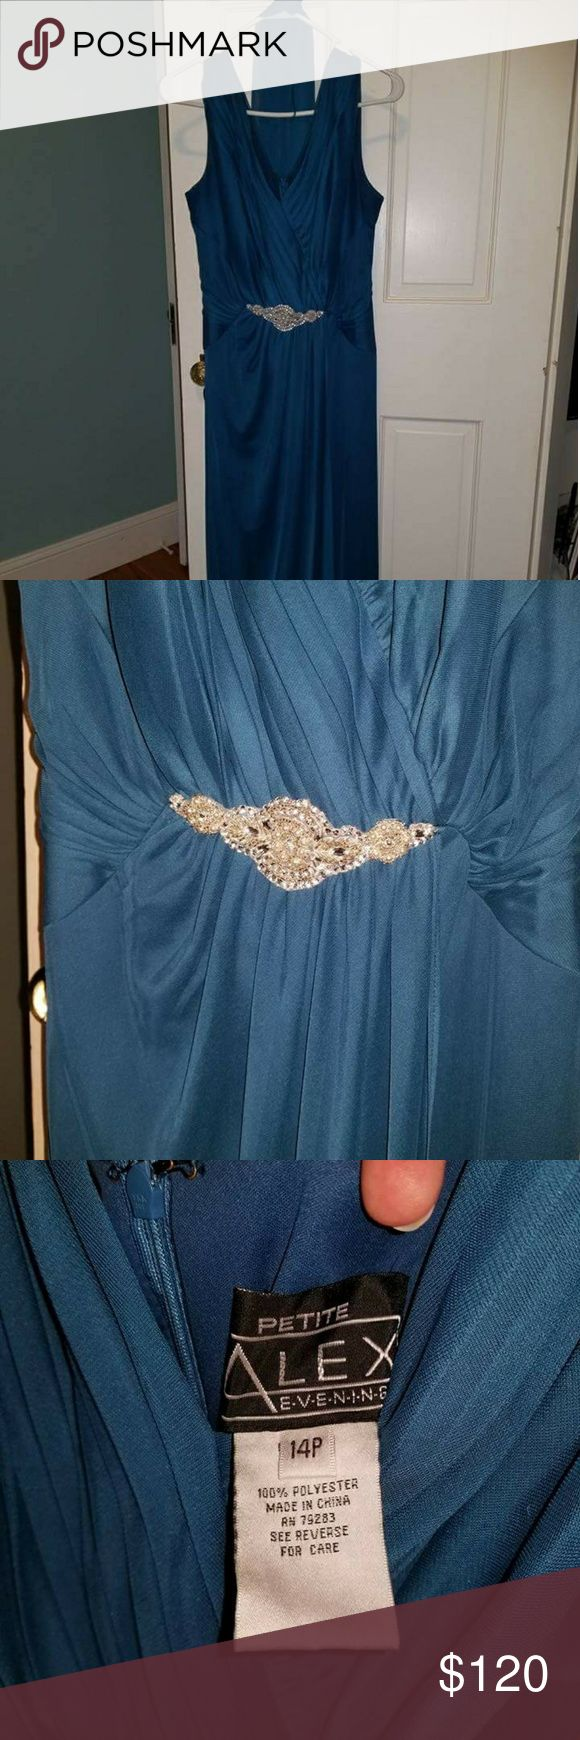 Alex Evenings formal dress with scarf Only worn once for my sister's wedding. Has jeweled faux clasp to add detail. Alex Evenings Dresses Wedding